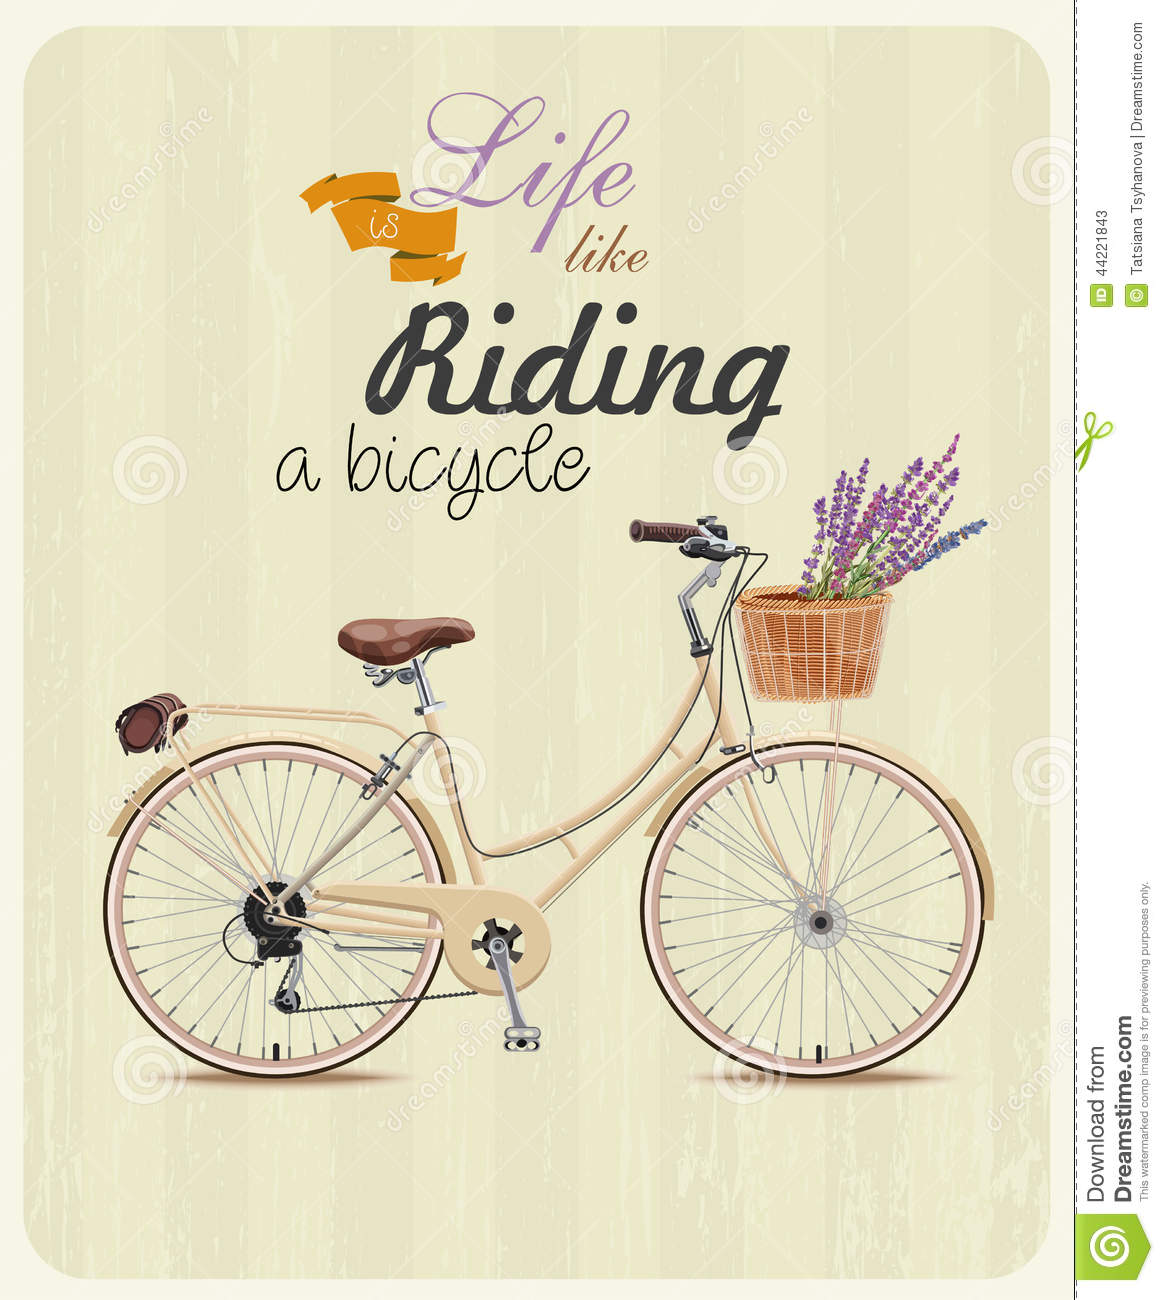 Bicycle illustration retro - photo#18